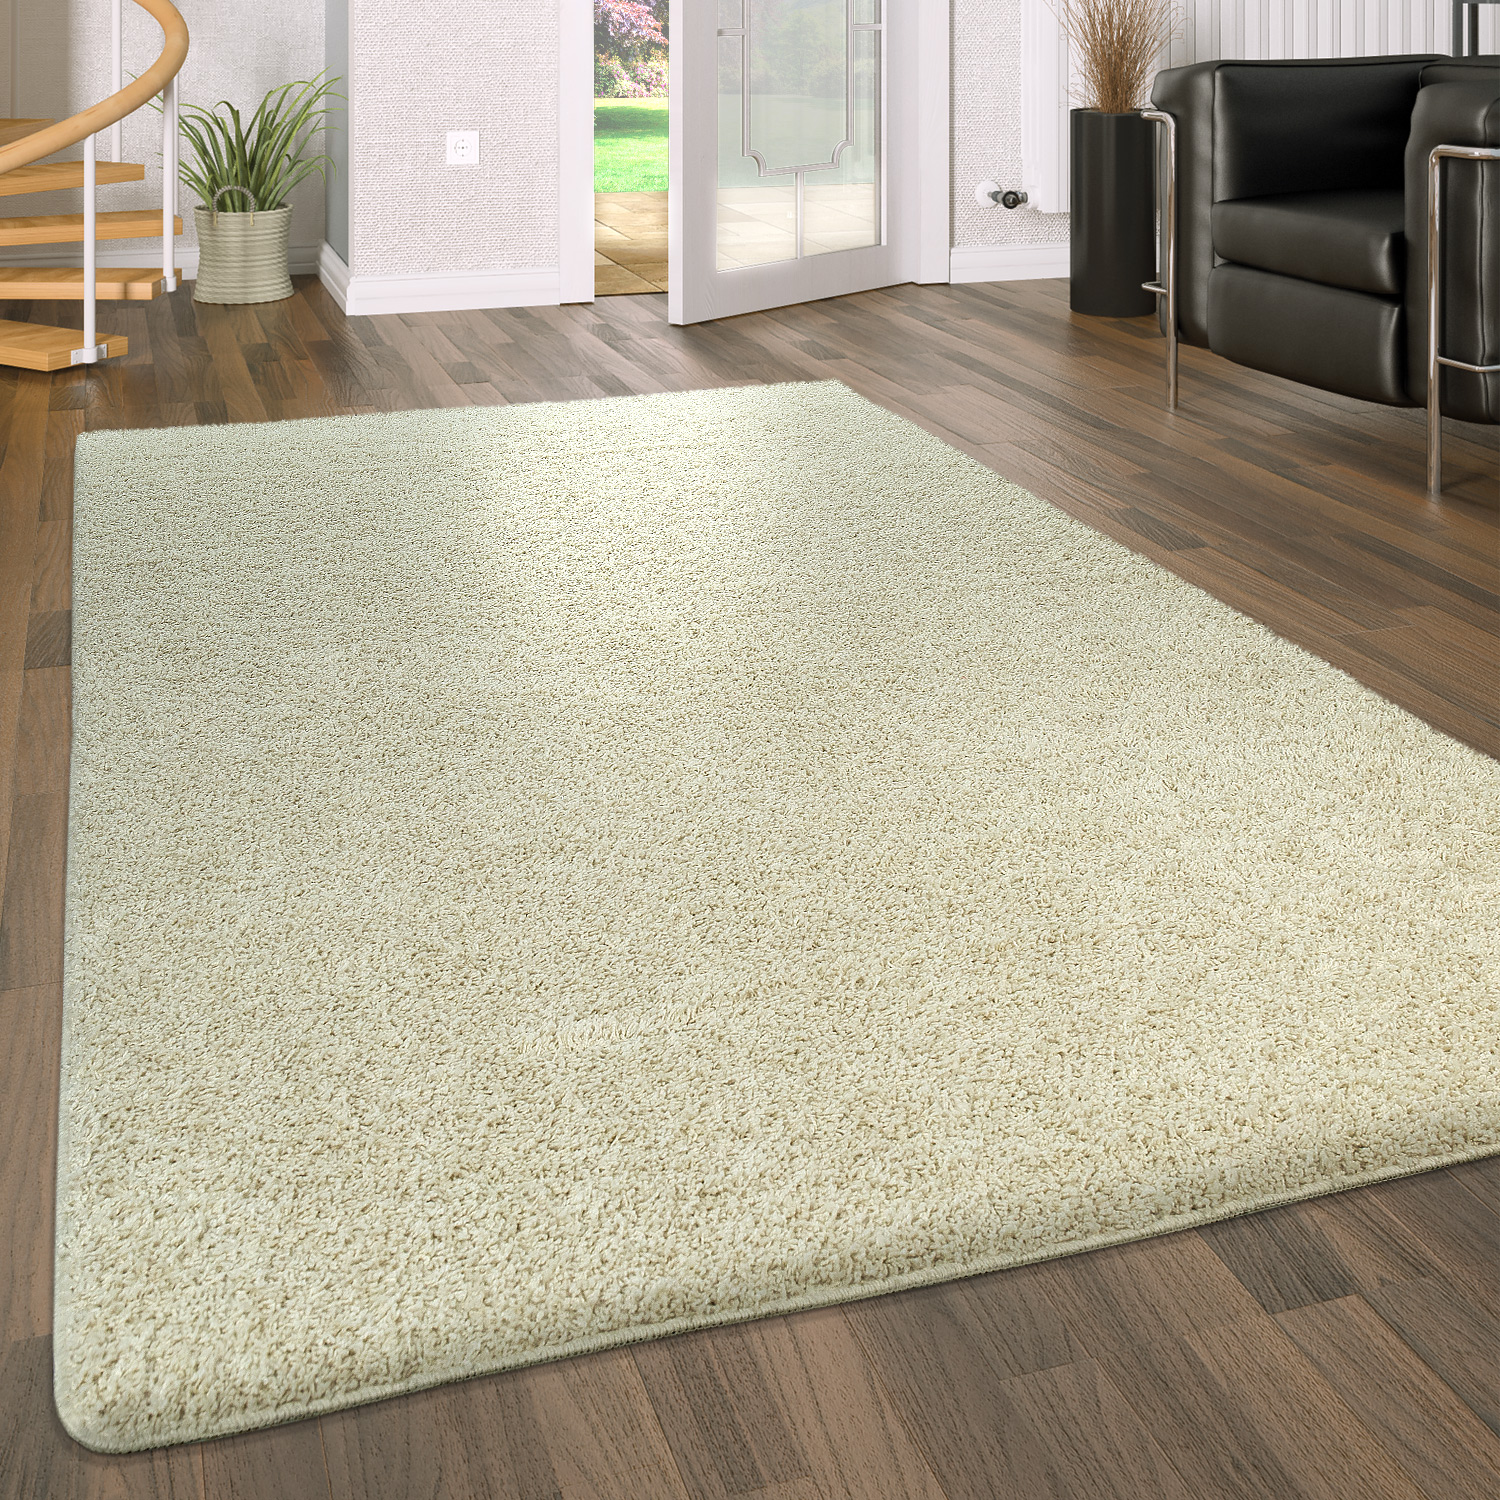 Deep Pile Living Room Rug Washable Shaggy Non-Slip One Colour In Cream